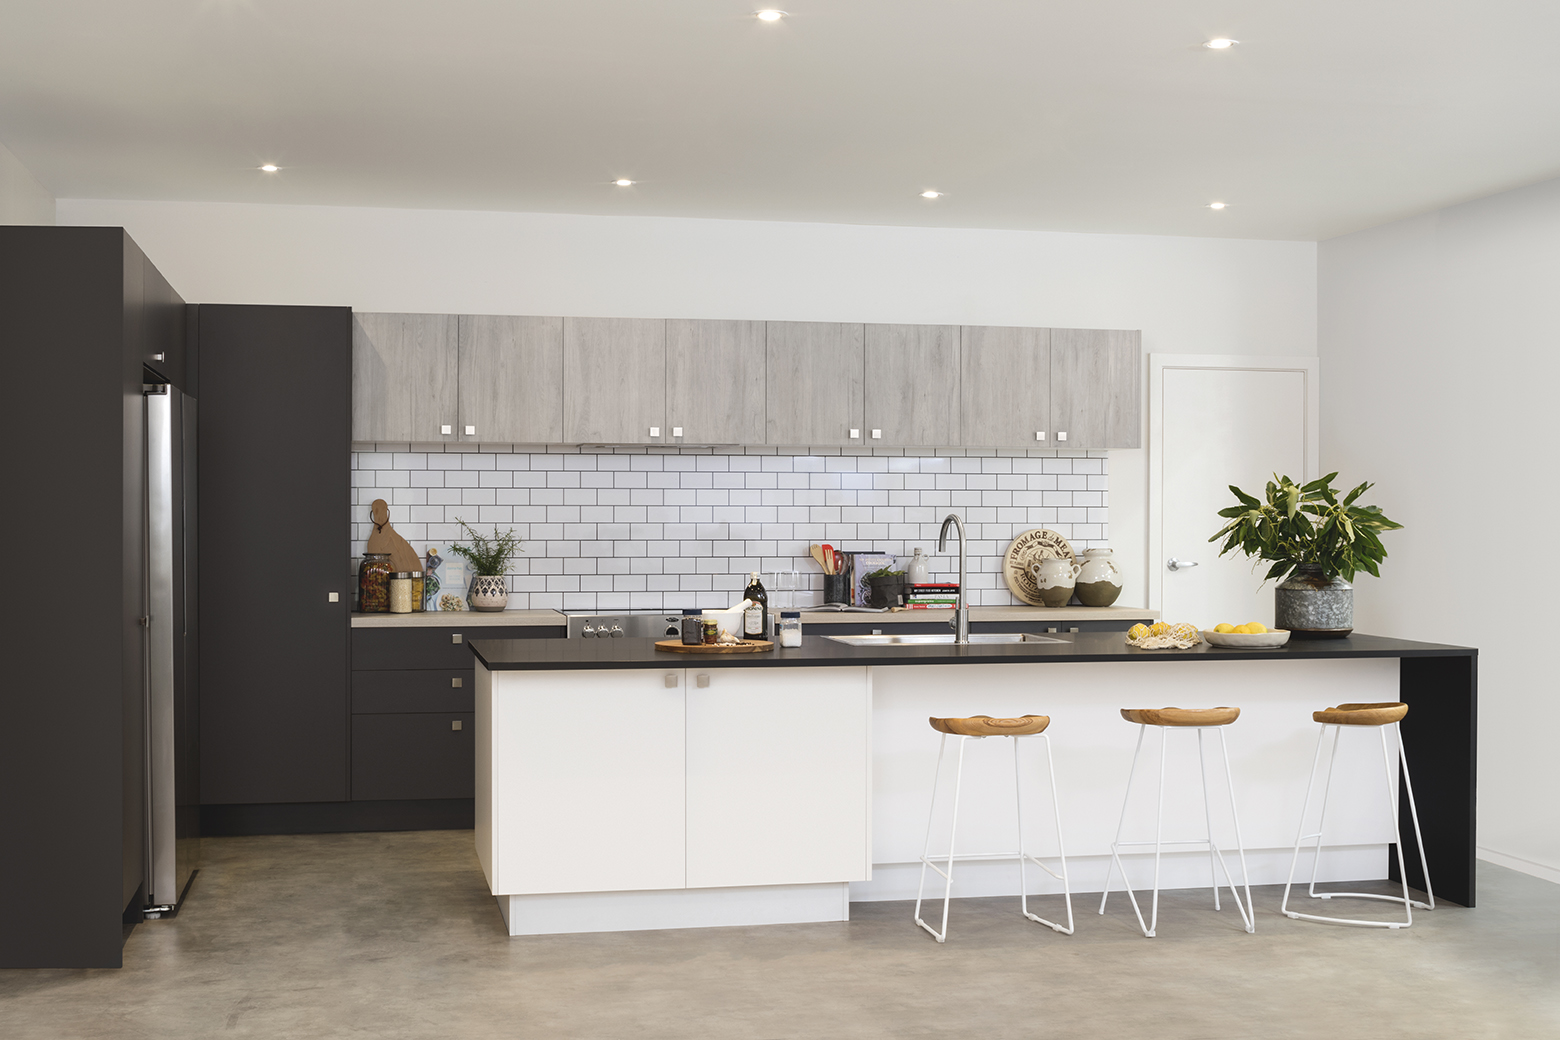 a modern showcase - kitchen inspiration and ideas | kaboodle kitchen